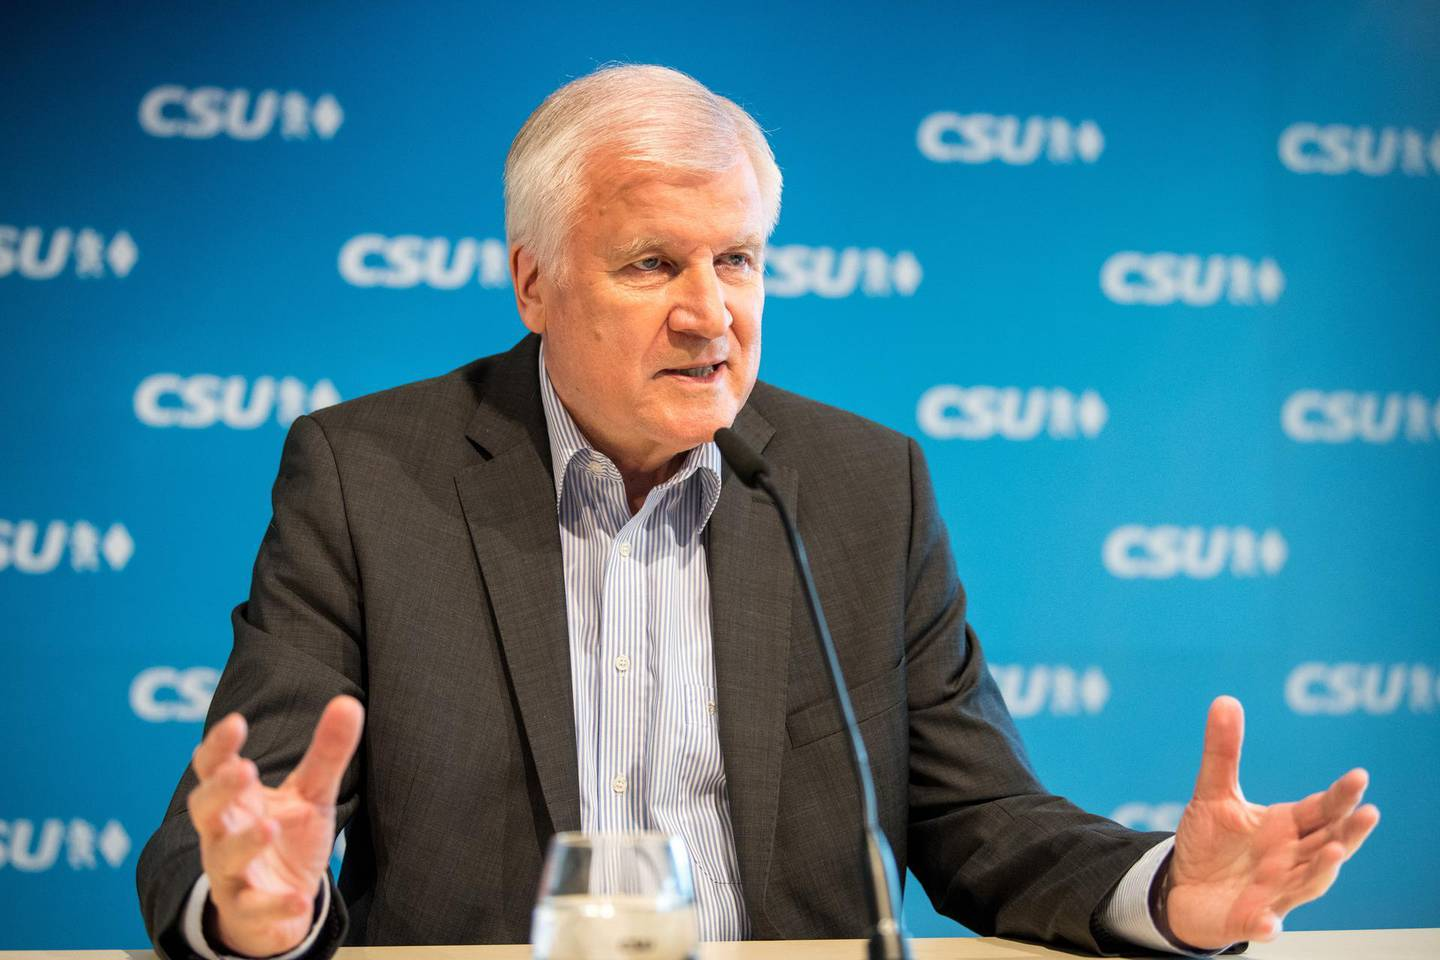 epa06818720 German Interior Minister Horst Seehofer speaks during a press conference after the CSU board meeting in Munich, Bavaria, Germany, 16 June 2018. The CDU and their Bavarian sister party Christian Social Union (CSU) are still discordant regarding the treatment of refugees. The CSU party board met in Munich to discuss the Migration Masterplan of German Interior Minister Horst Seehofer  EPA/MARC MUELLER